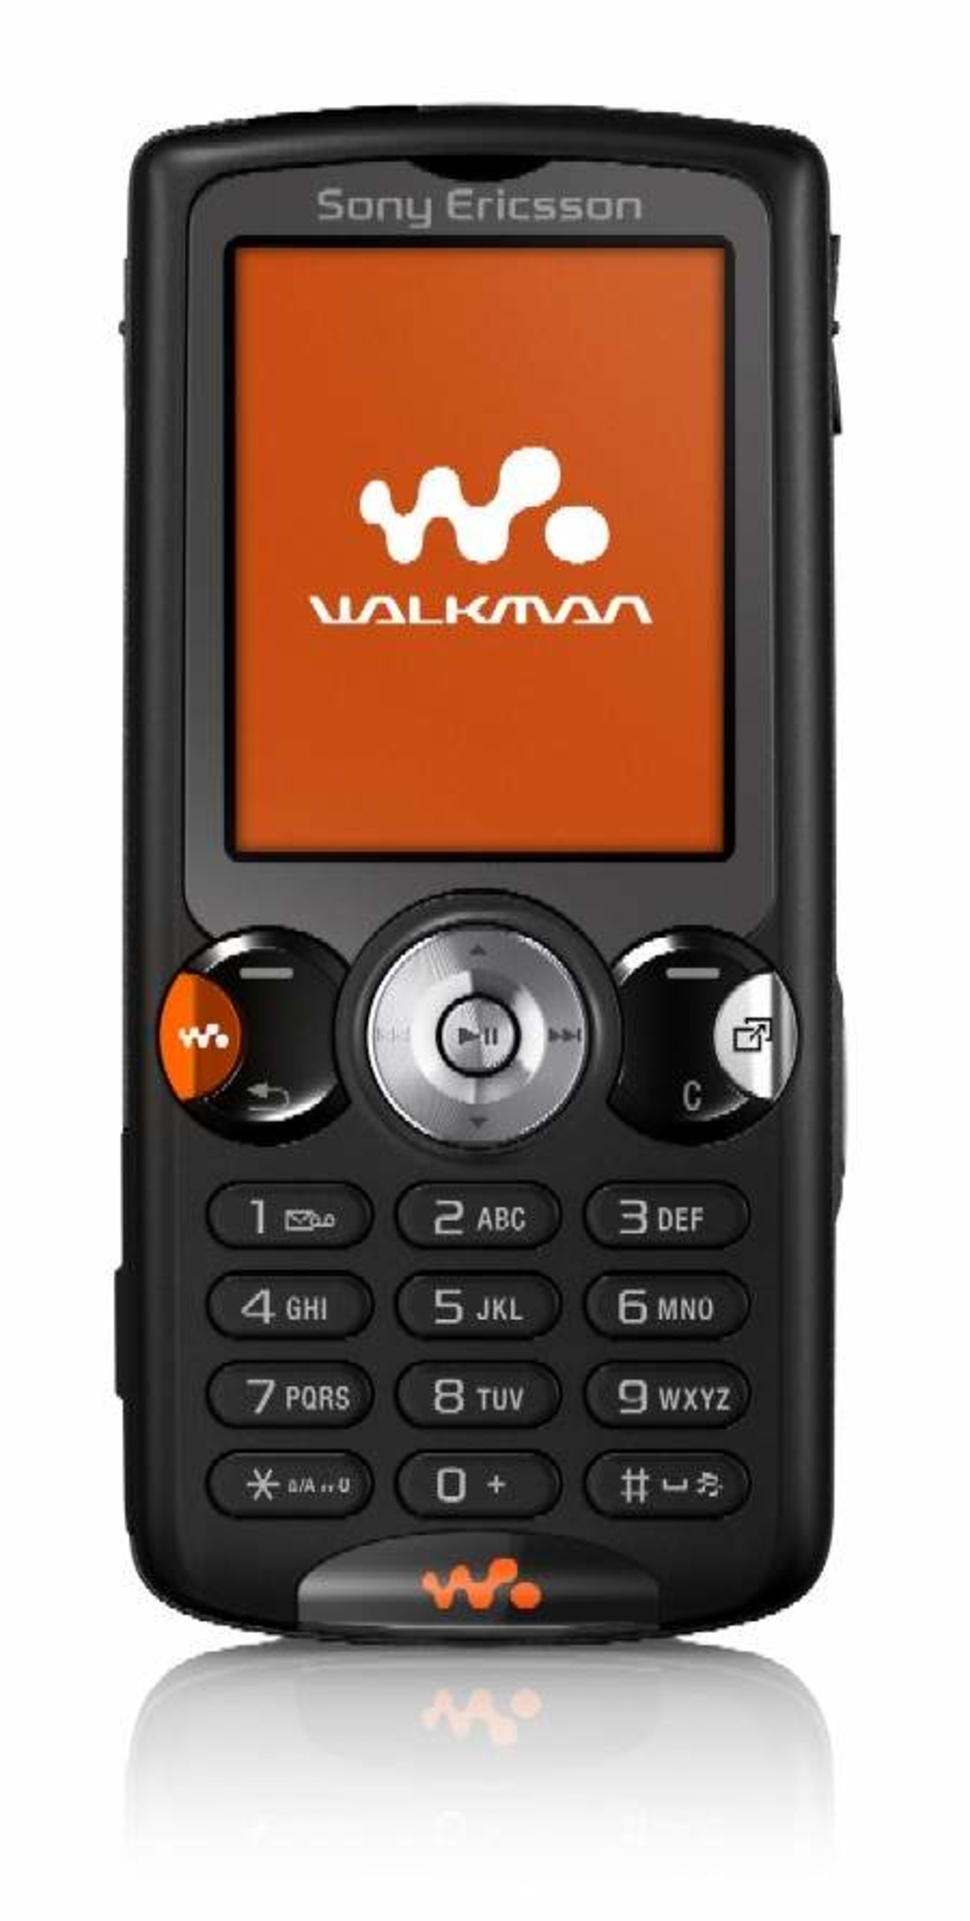 68641-phones-review-sony-ericsson-walkman-w810i-mobile-phone-image2-1X9OBsQnIi.jpg